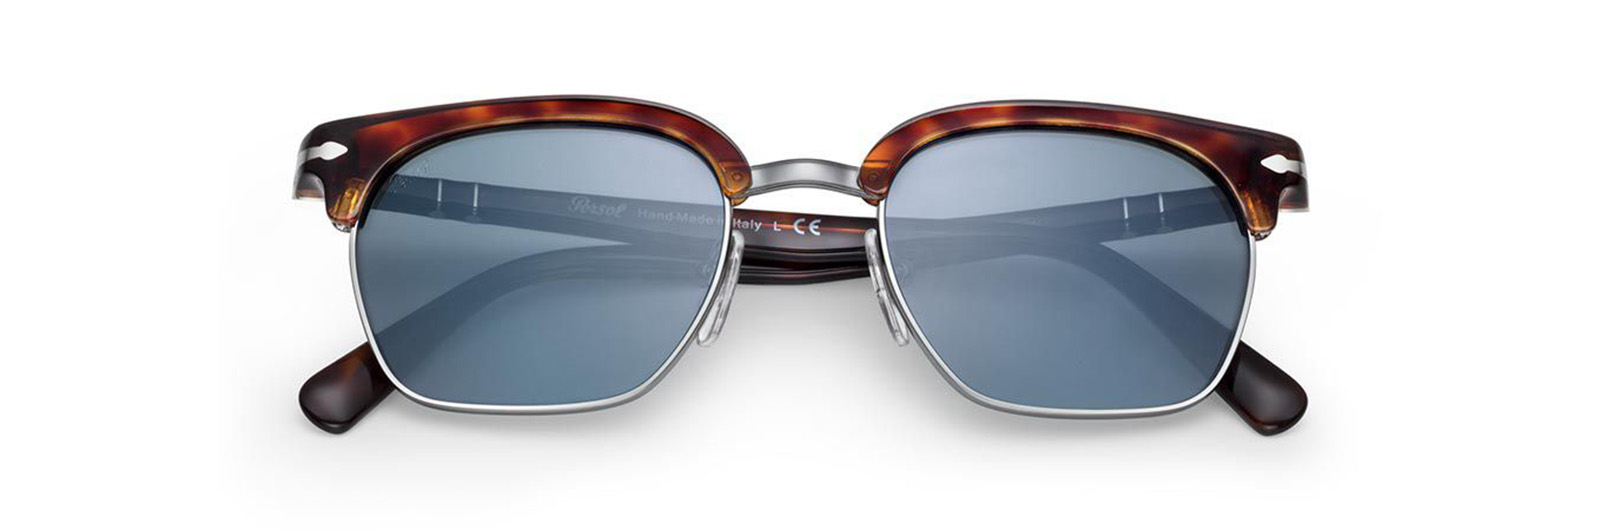 e9009d0db065f The Elite Sunglass Makers Over at Persol Finally Have Their Own ...